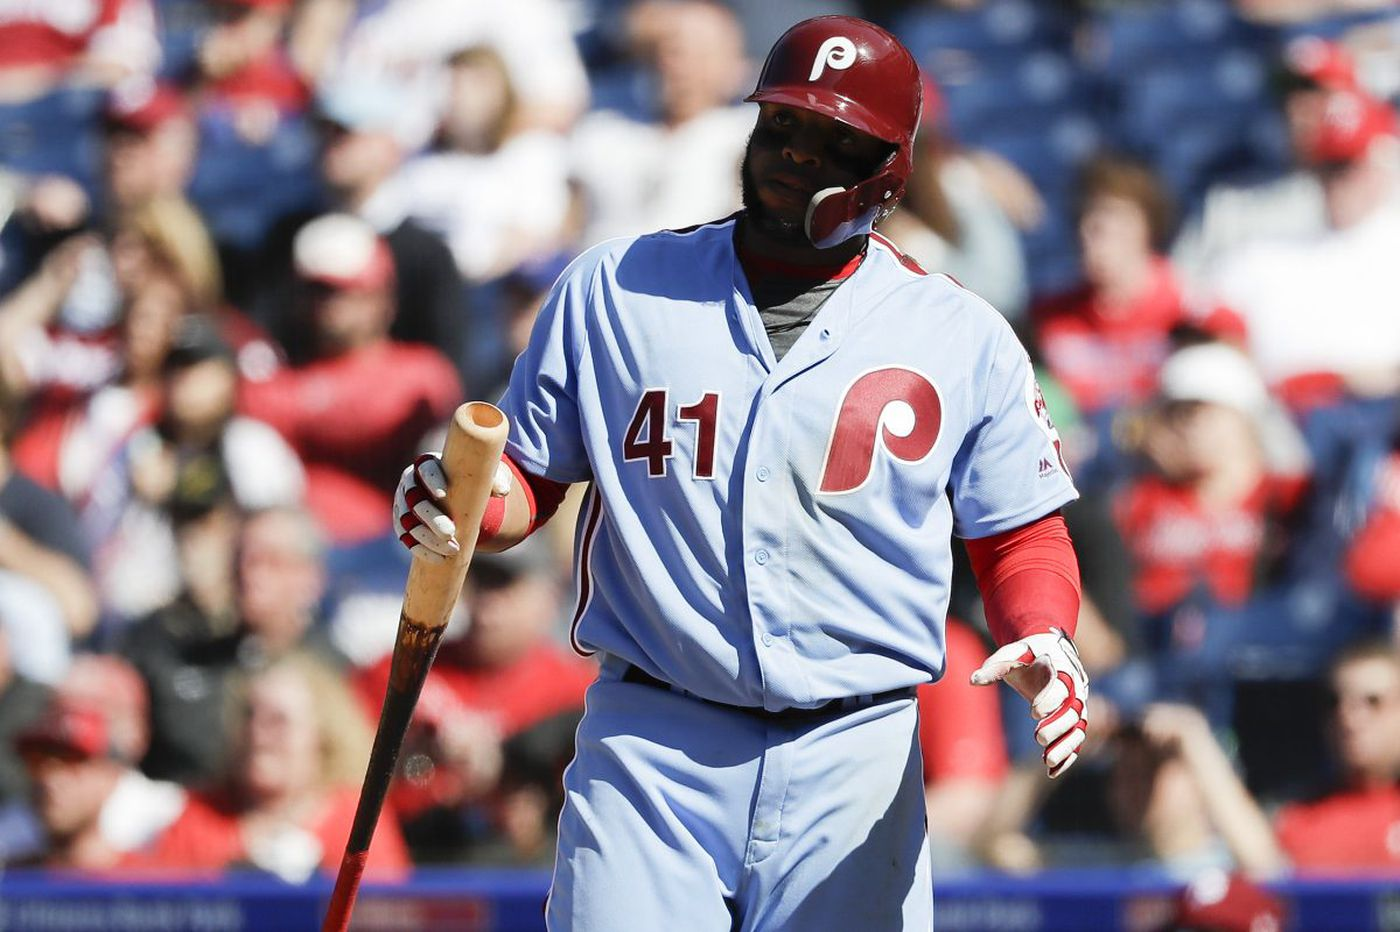 Carlos Santana on poor start with Phillies: 'Check back in September'